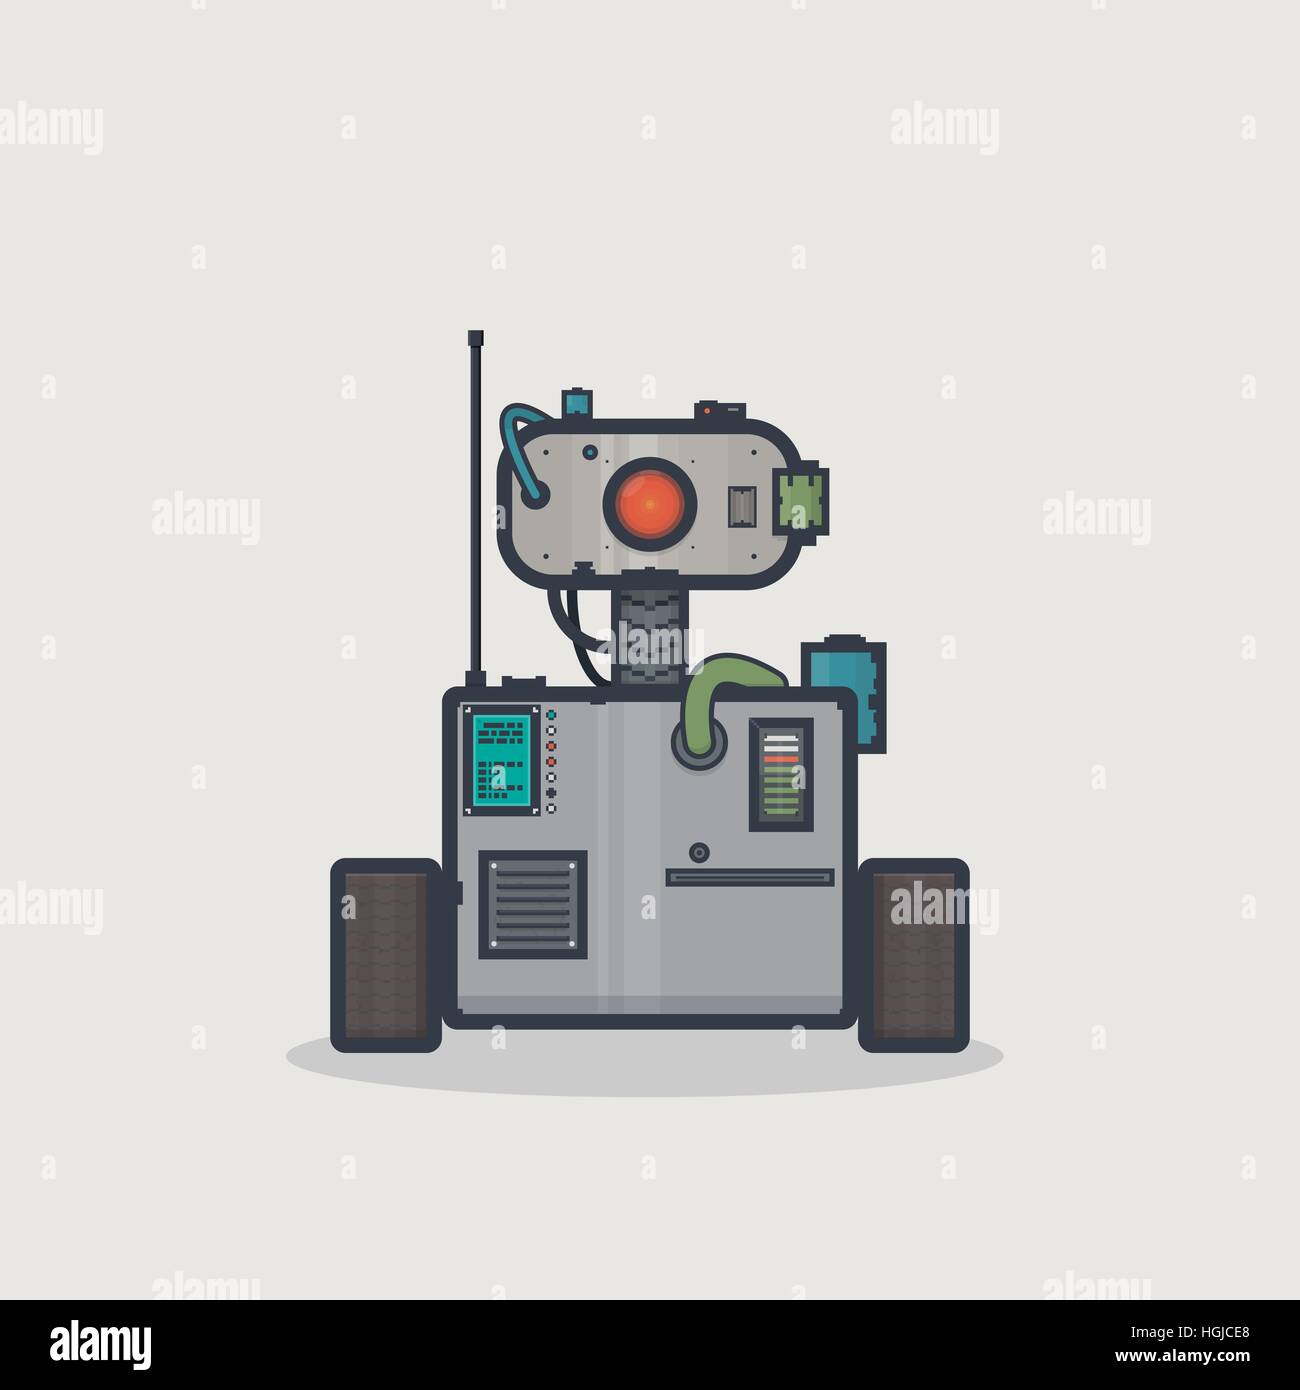 Moving Robot Stock Photos & Moving Robot Stock Images - Alamy